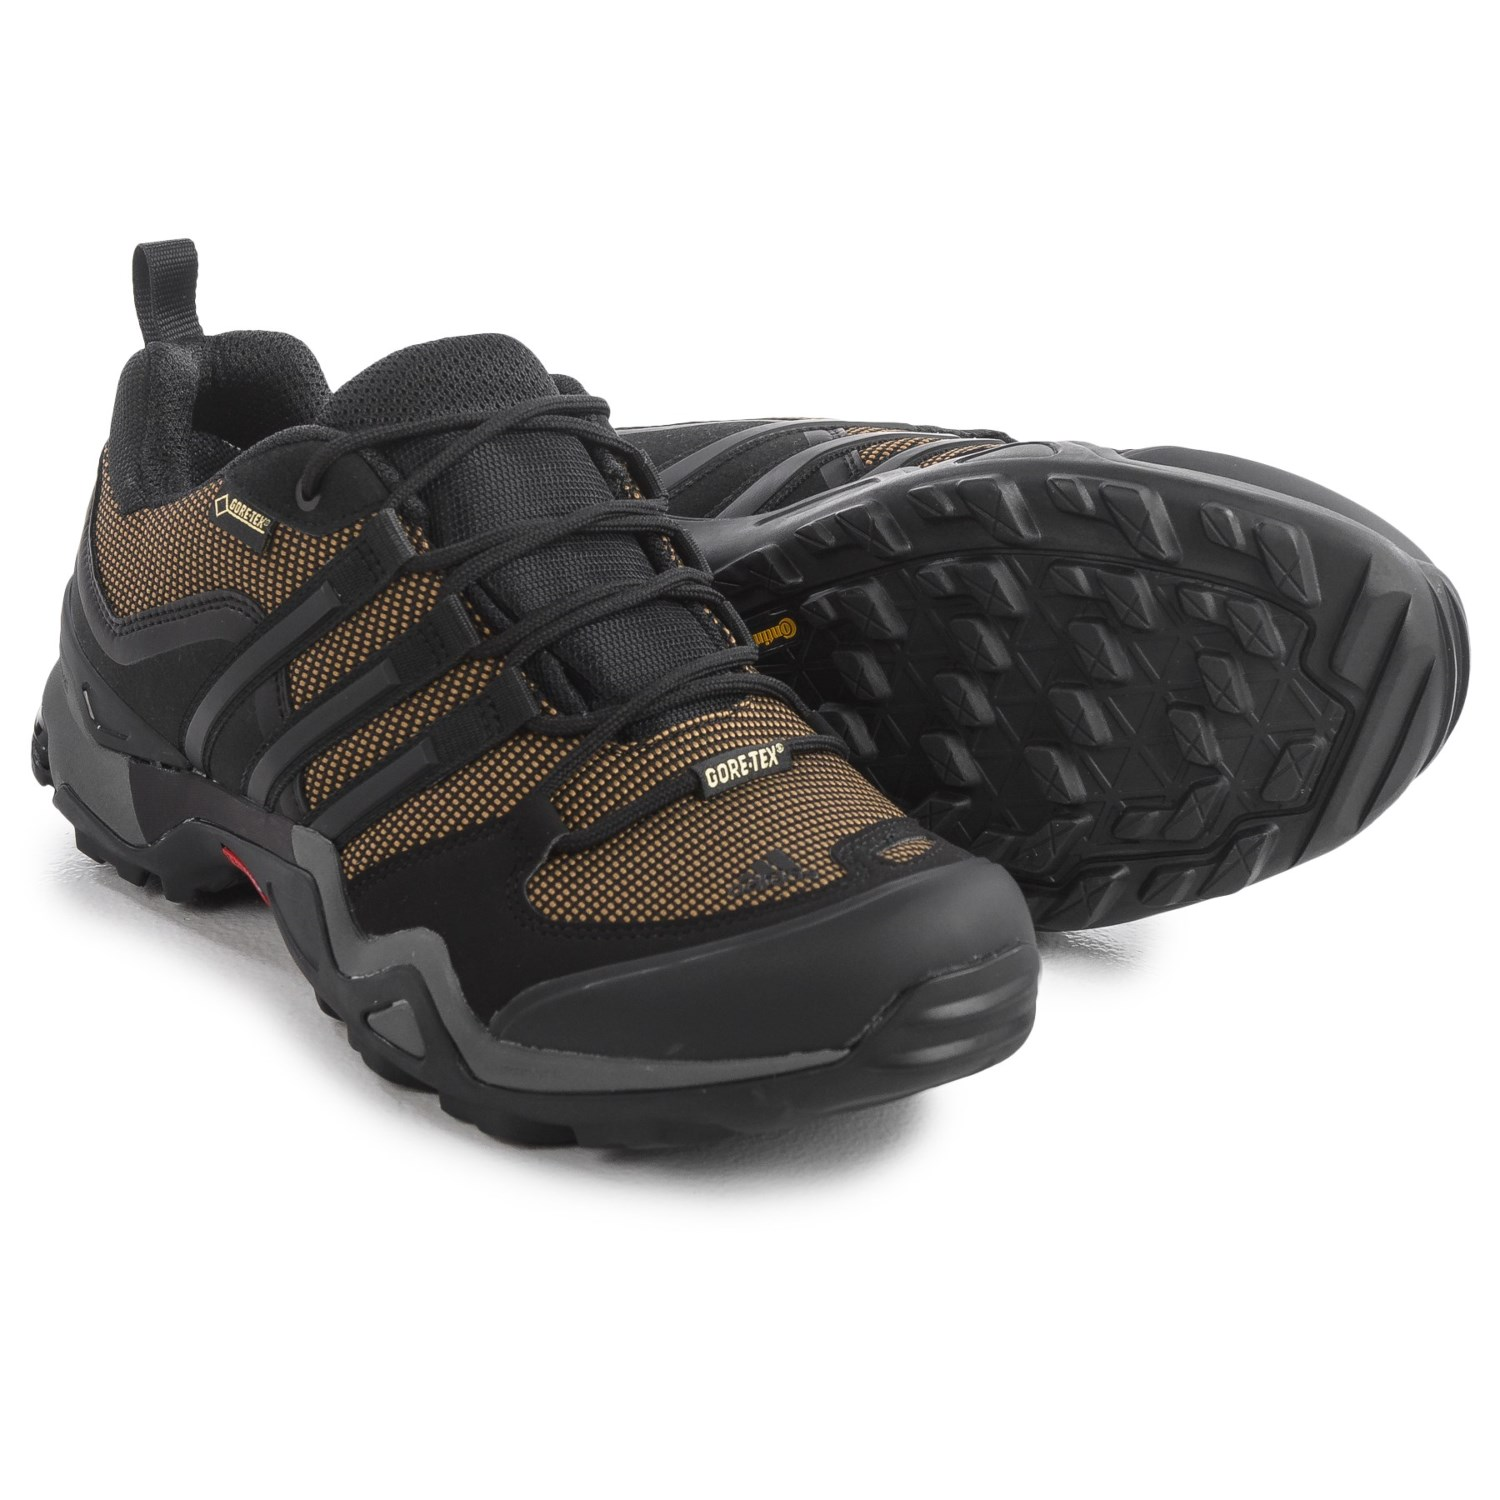 adidas outdoor fast x gore tex hiking shoes for men save 54. Black Bedroom Furniture Sets. Home Design Ideas